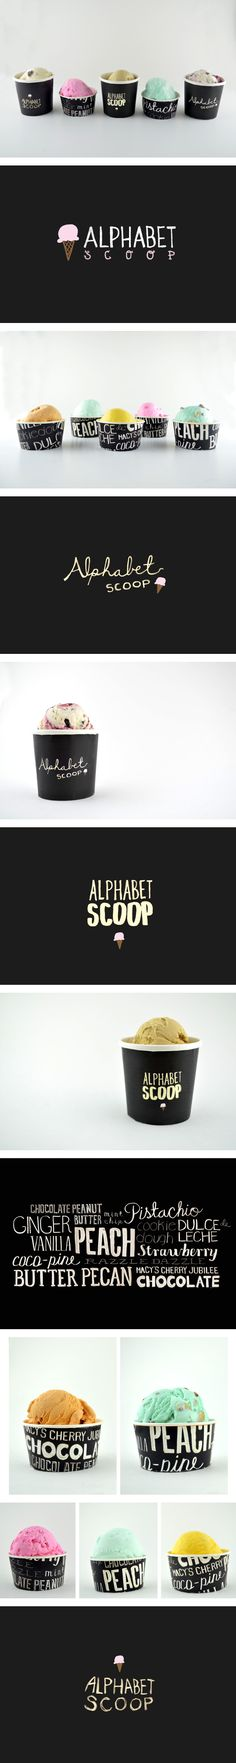 Alphabet Scoop Packaging by Rebecca Lim PD